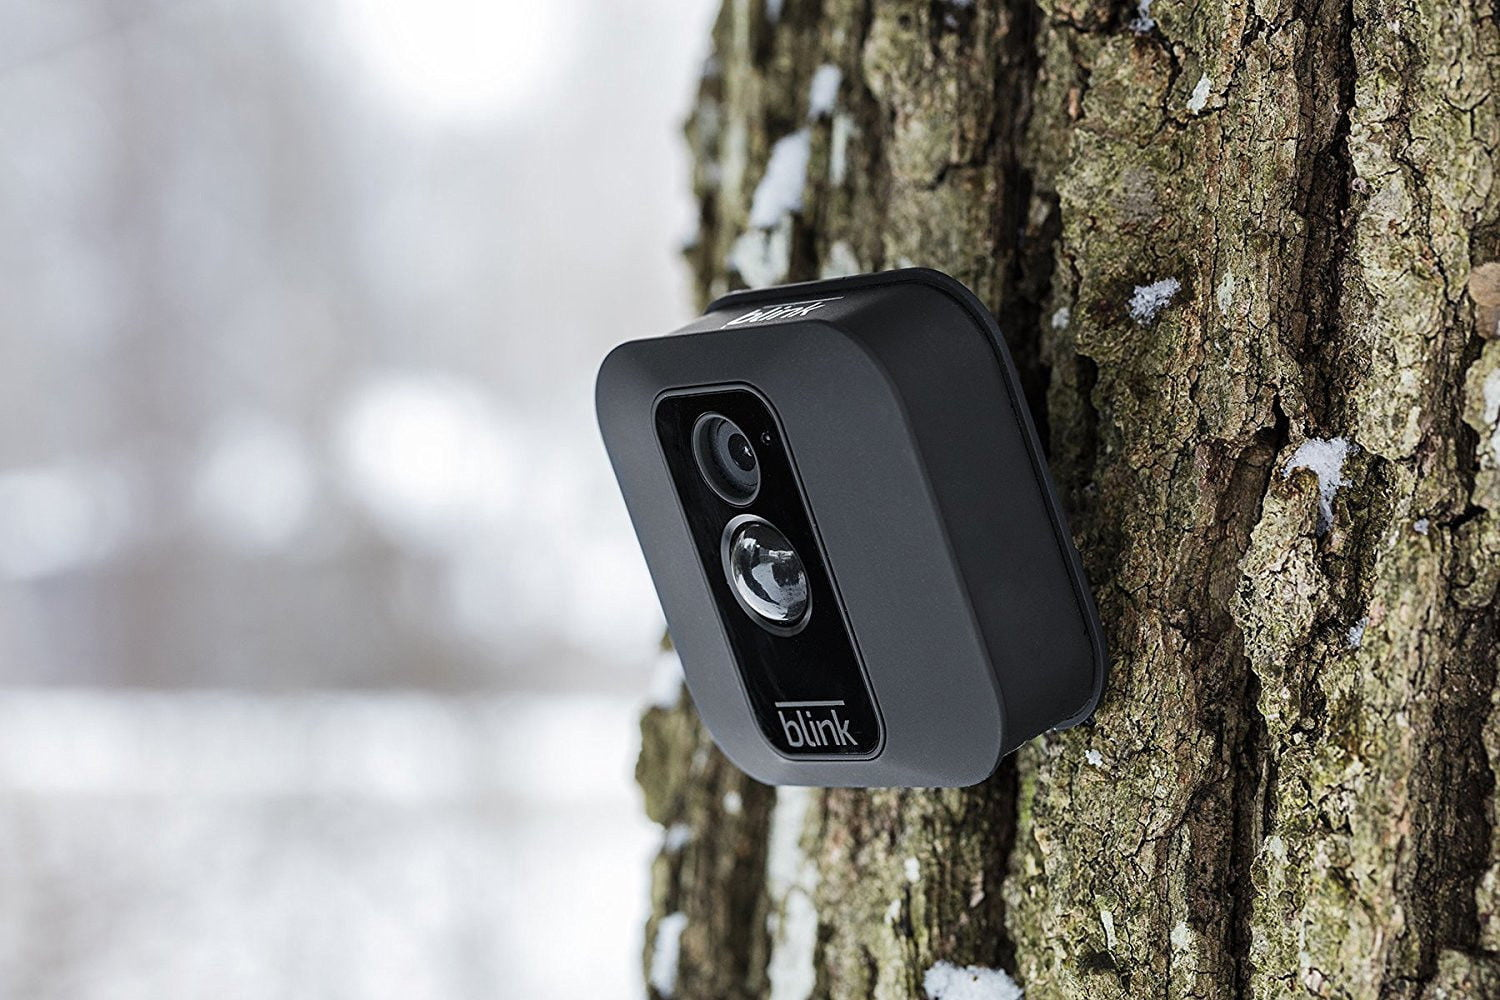 The Blink XT is an AA-powered security cam anyone can afford